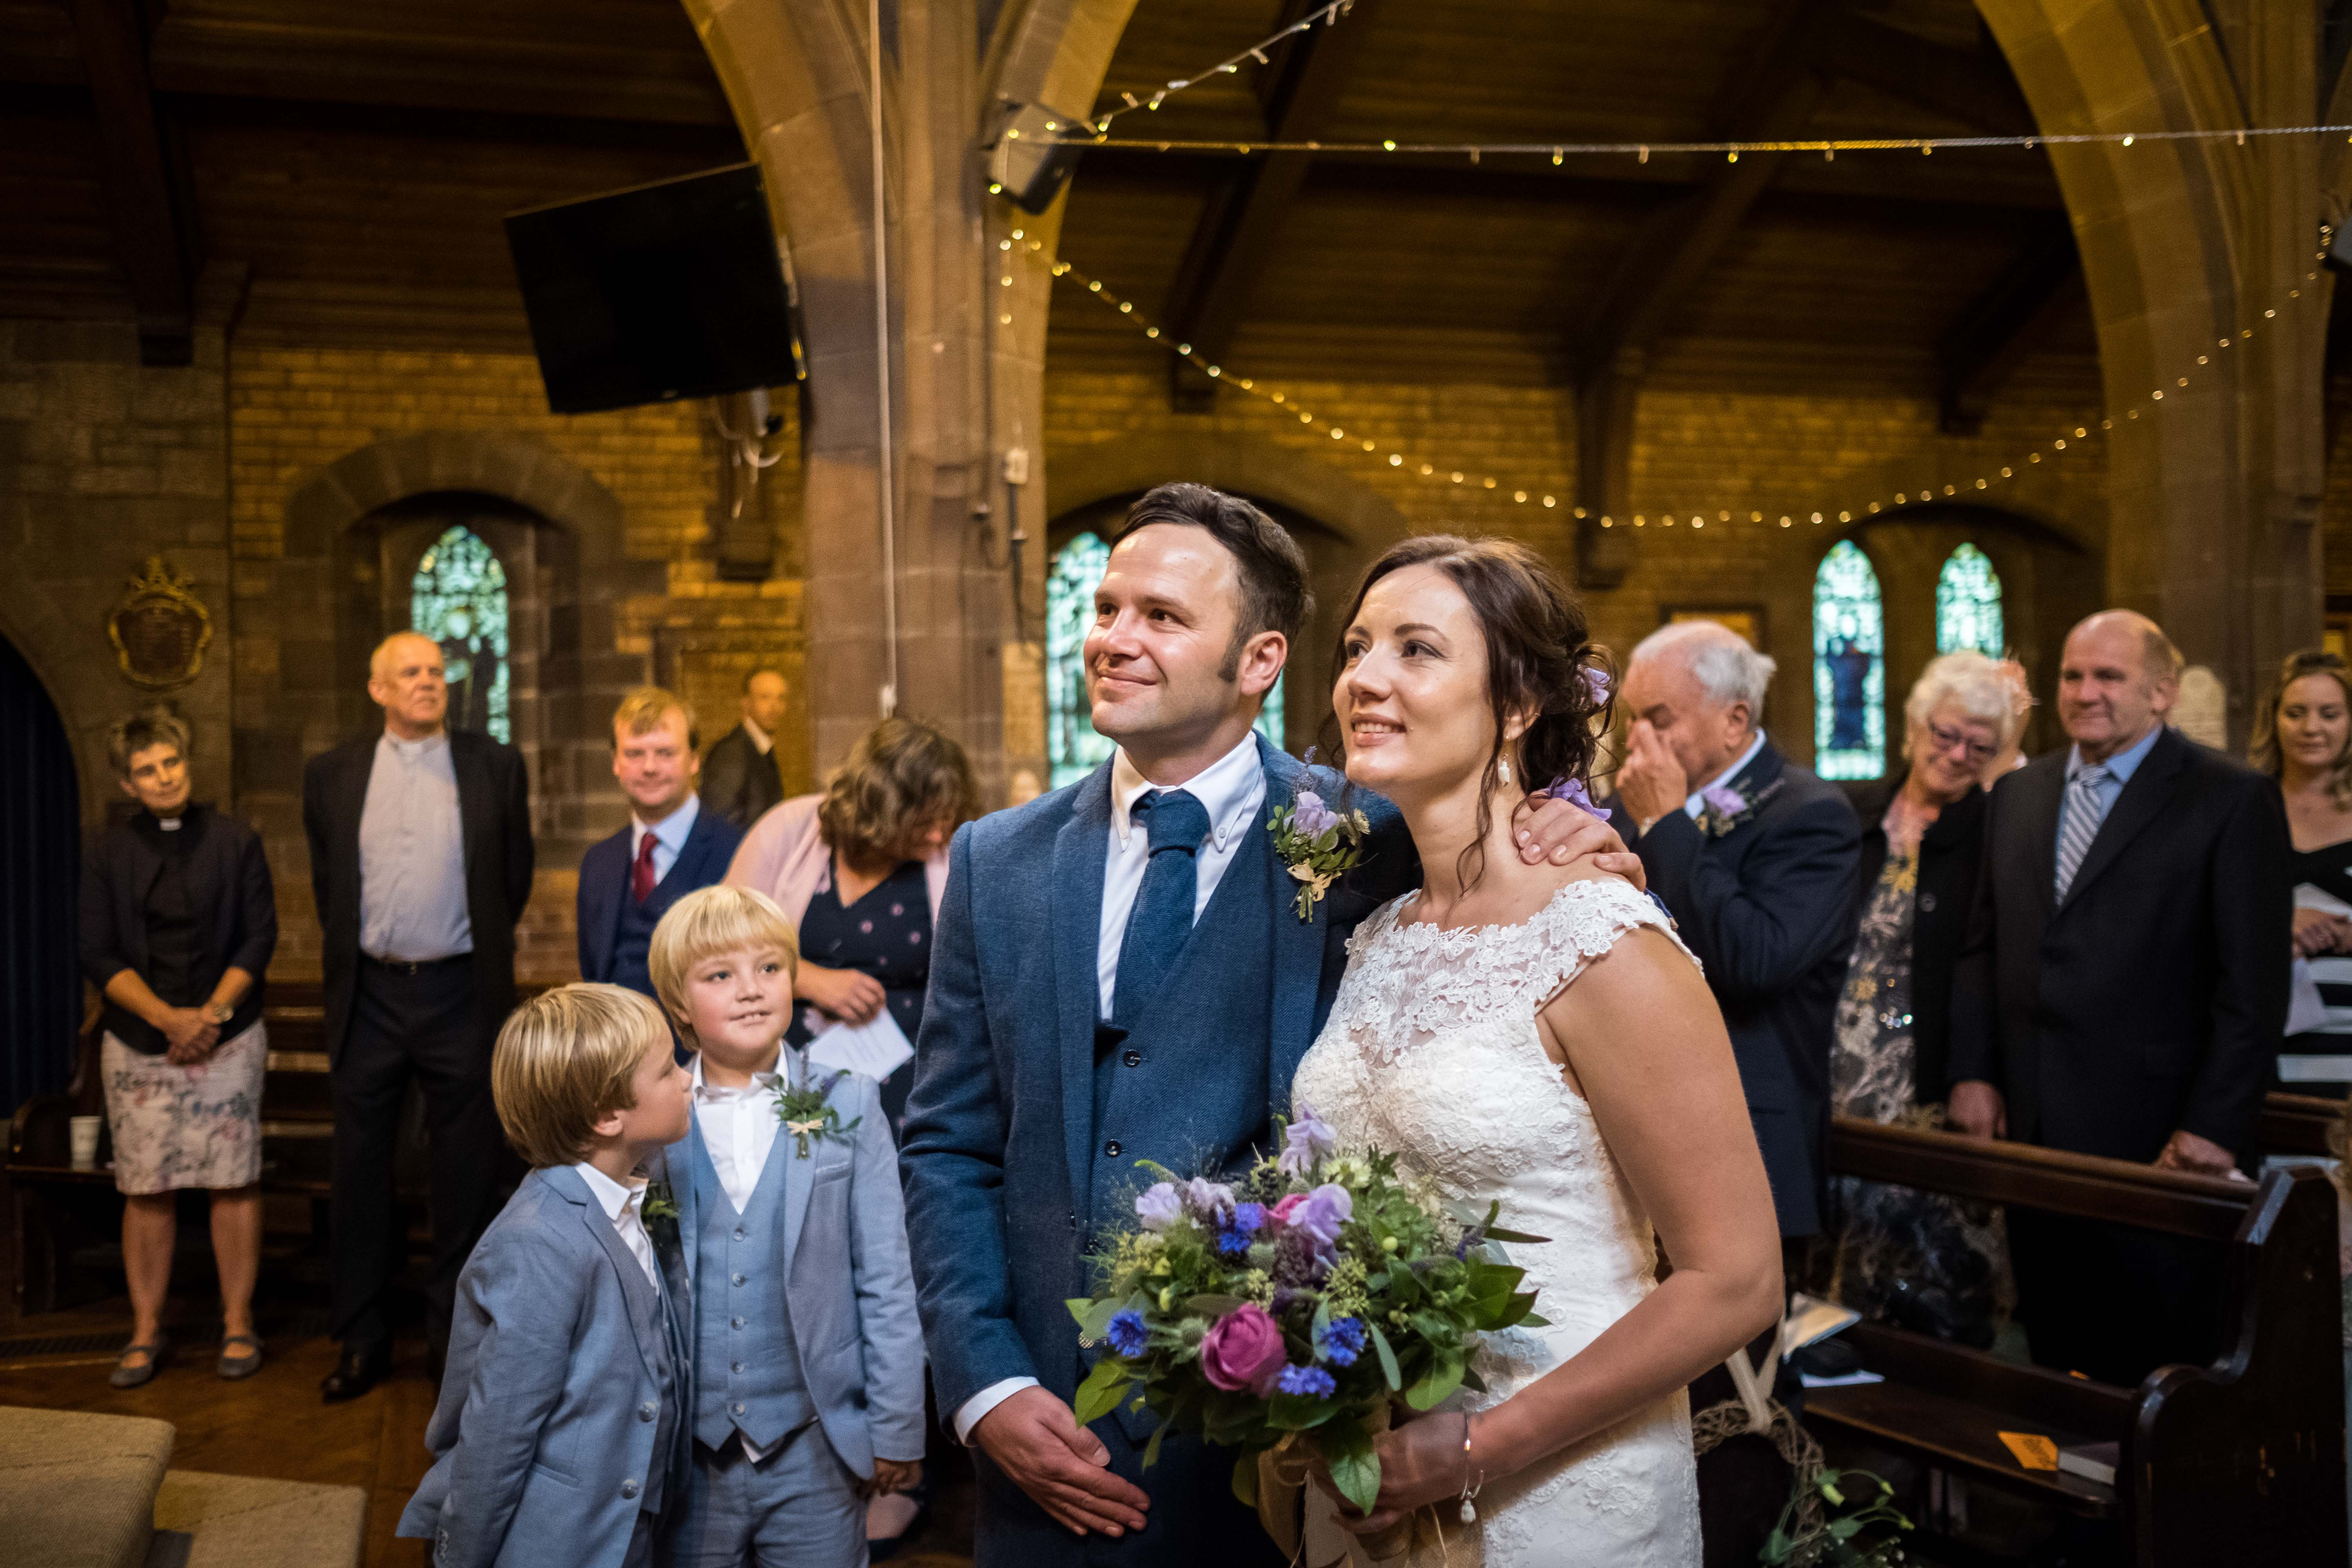 Beautiful image by Chester and North Wales wedding photographer Maurice. The bride and groom are cuddling whilst 2 young paige boys are looking at them and smiling.